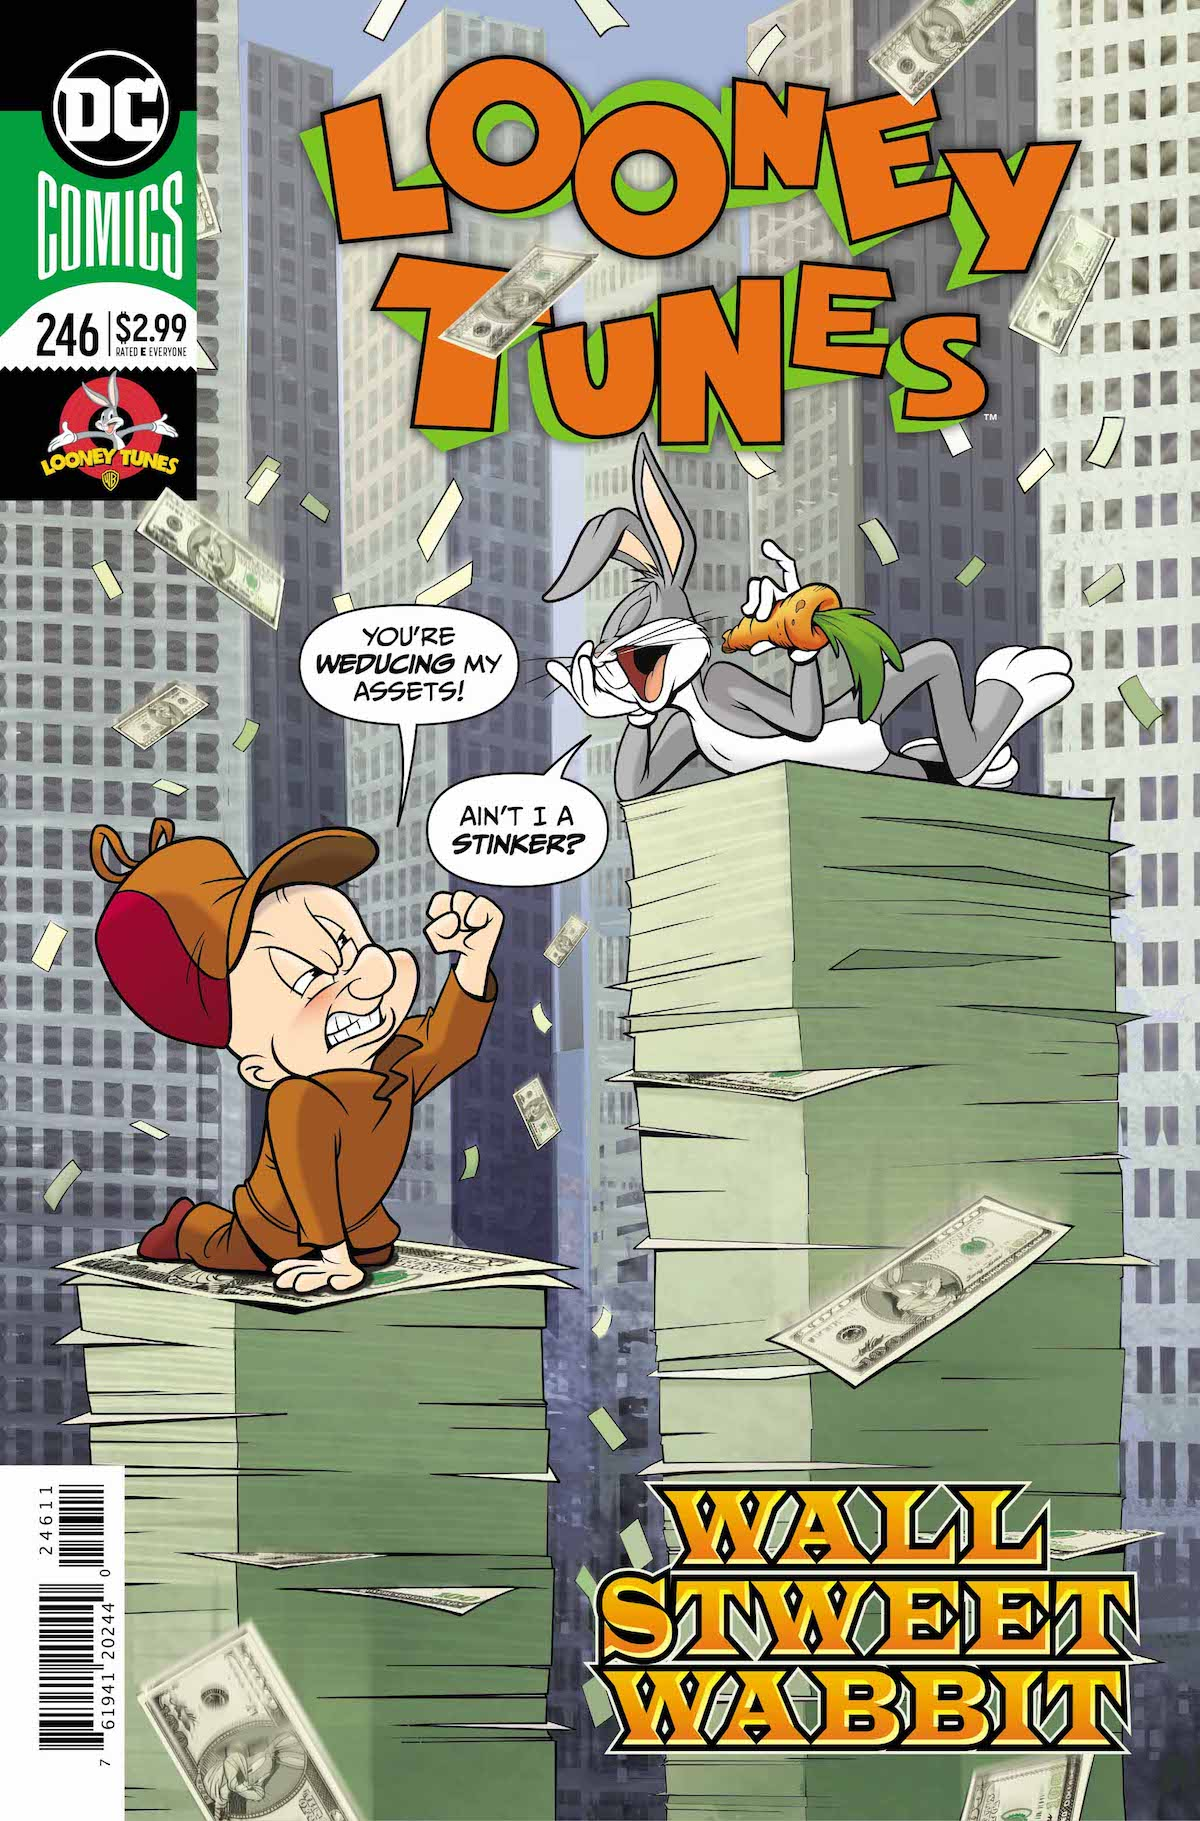 Preview: 'Looney Tunes' #246